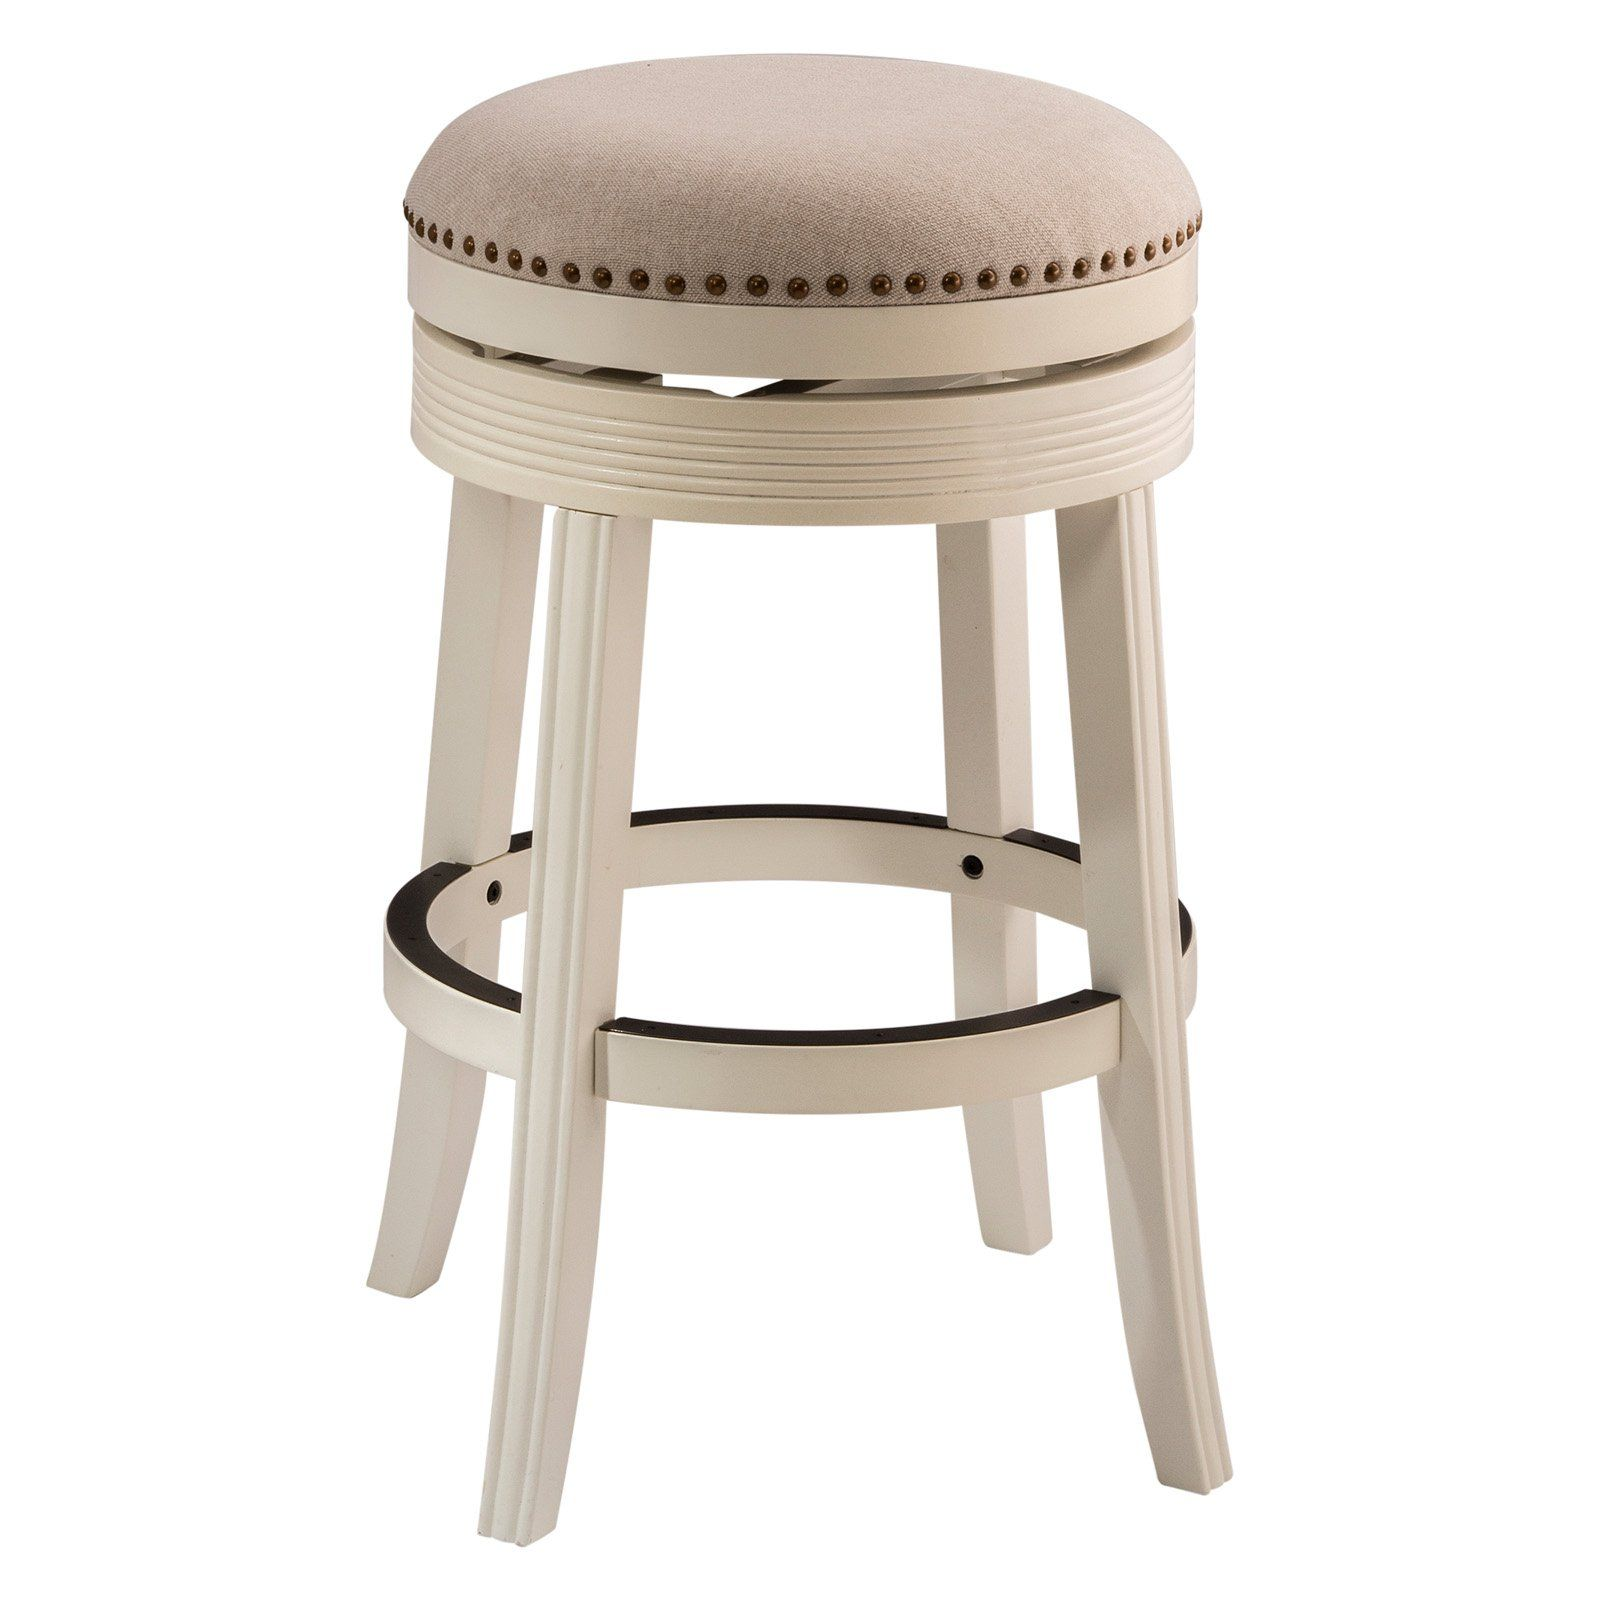 Groovy Hillsdale Furniture Tillman Backless Swivel Counter Stool Pabps2019 Chair Design Images Pabps2019Com